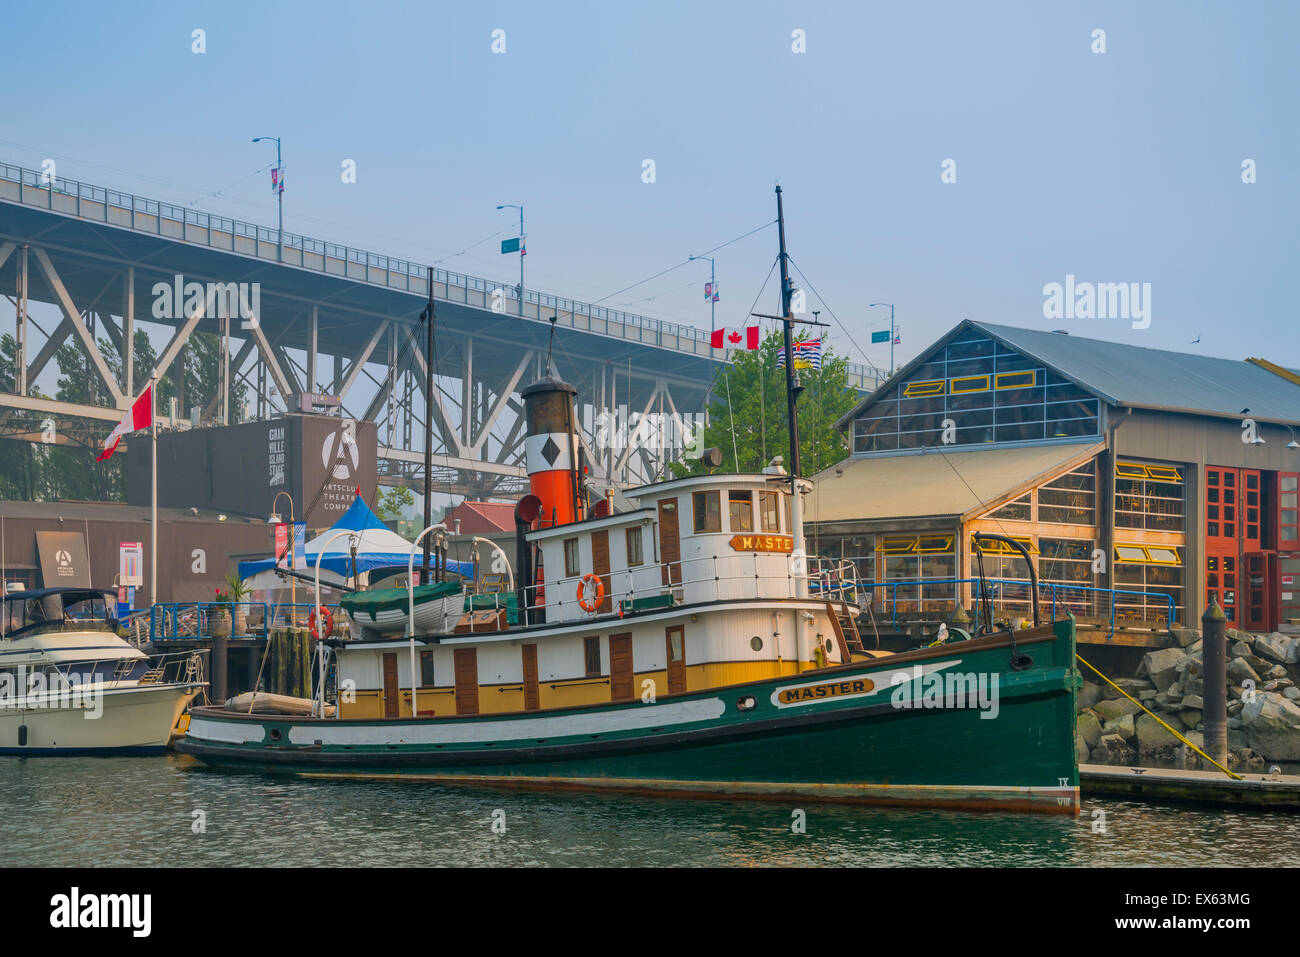 S.S. Master, only surviving west coast steam powered tug, docked at Granville Island, False Creek, Vancouver, British - Stock Image